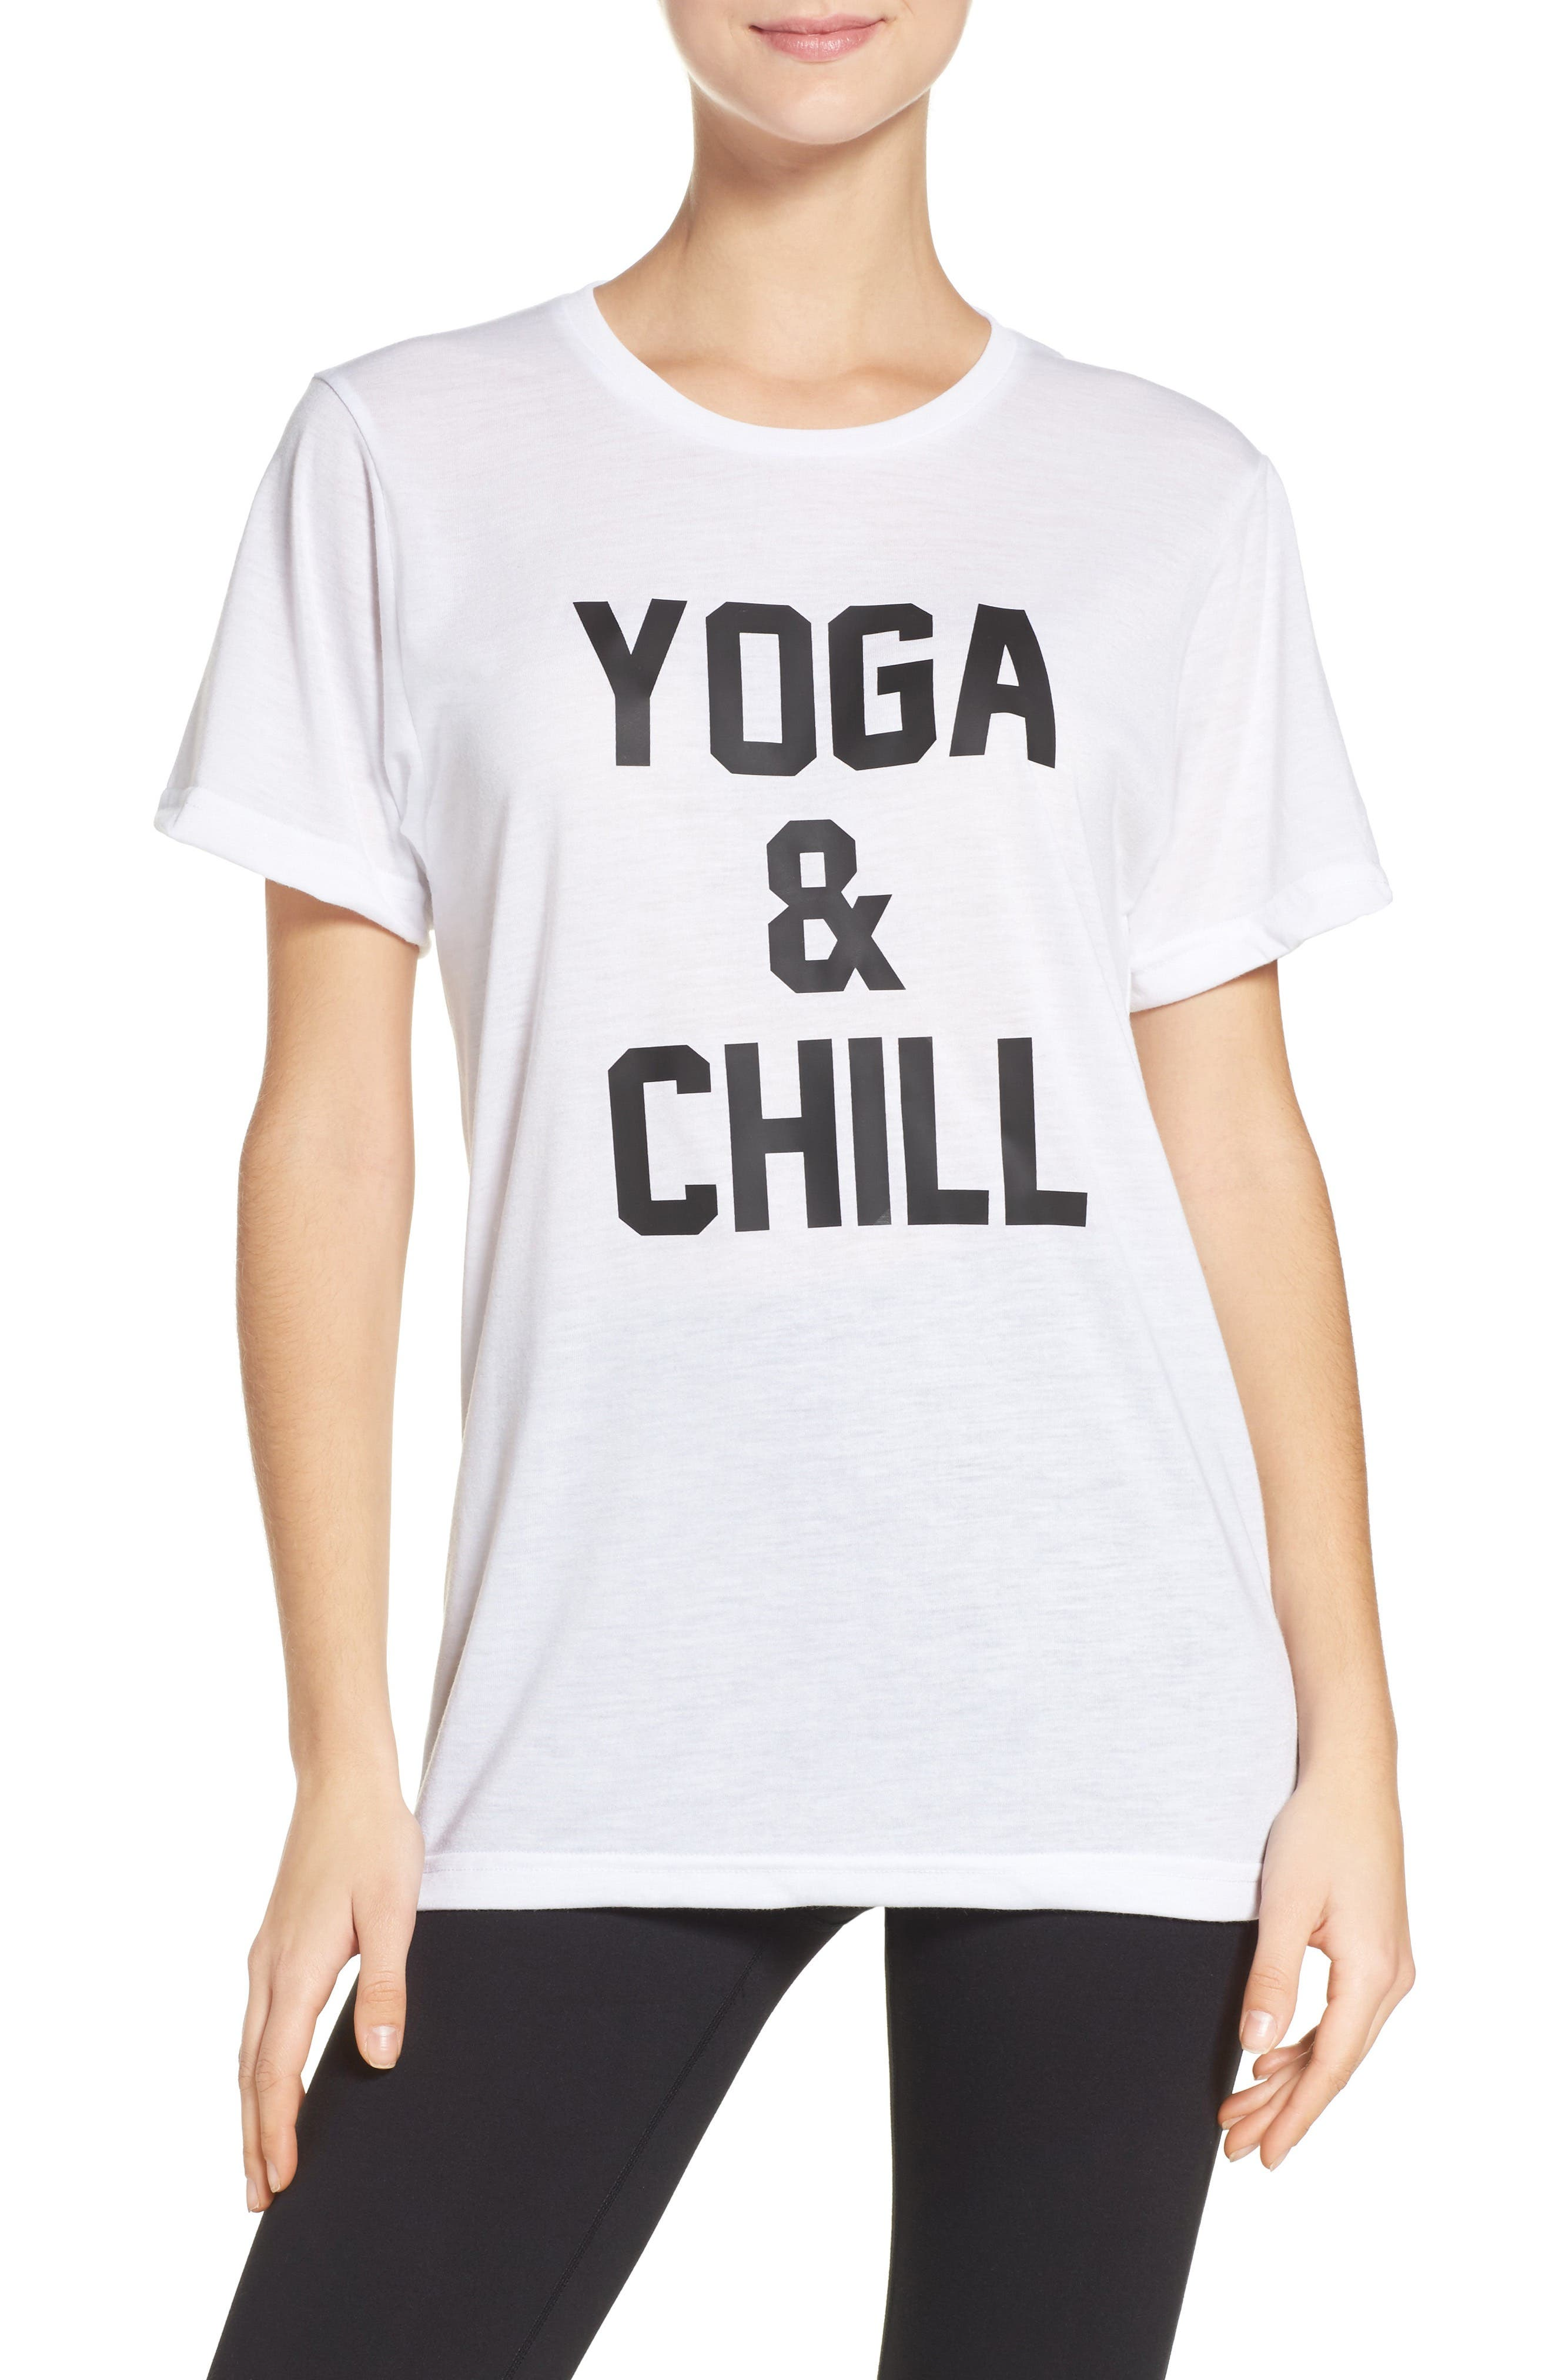 Yoga & Chill Tee,                         Main,                         color, 100